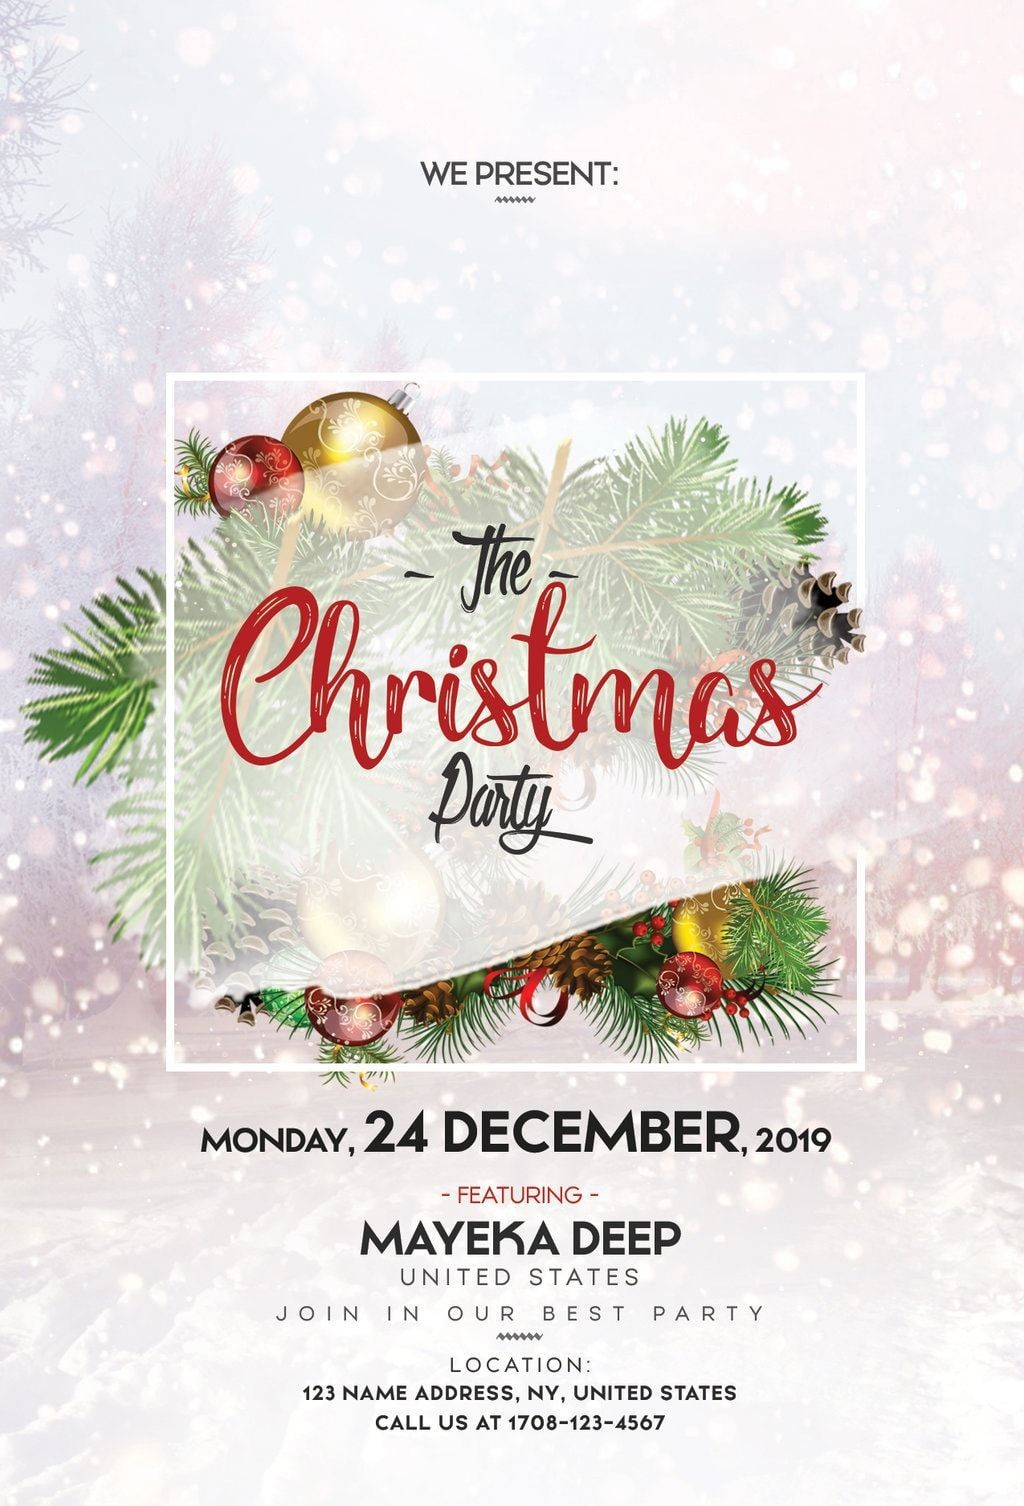 004 Staggering Free Christma Poster Template High Def  Templates Psd Download Design WordLarge